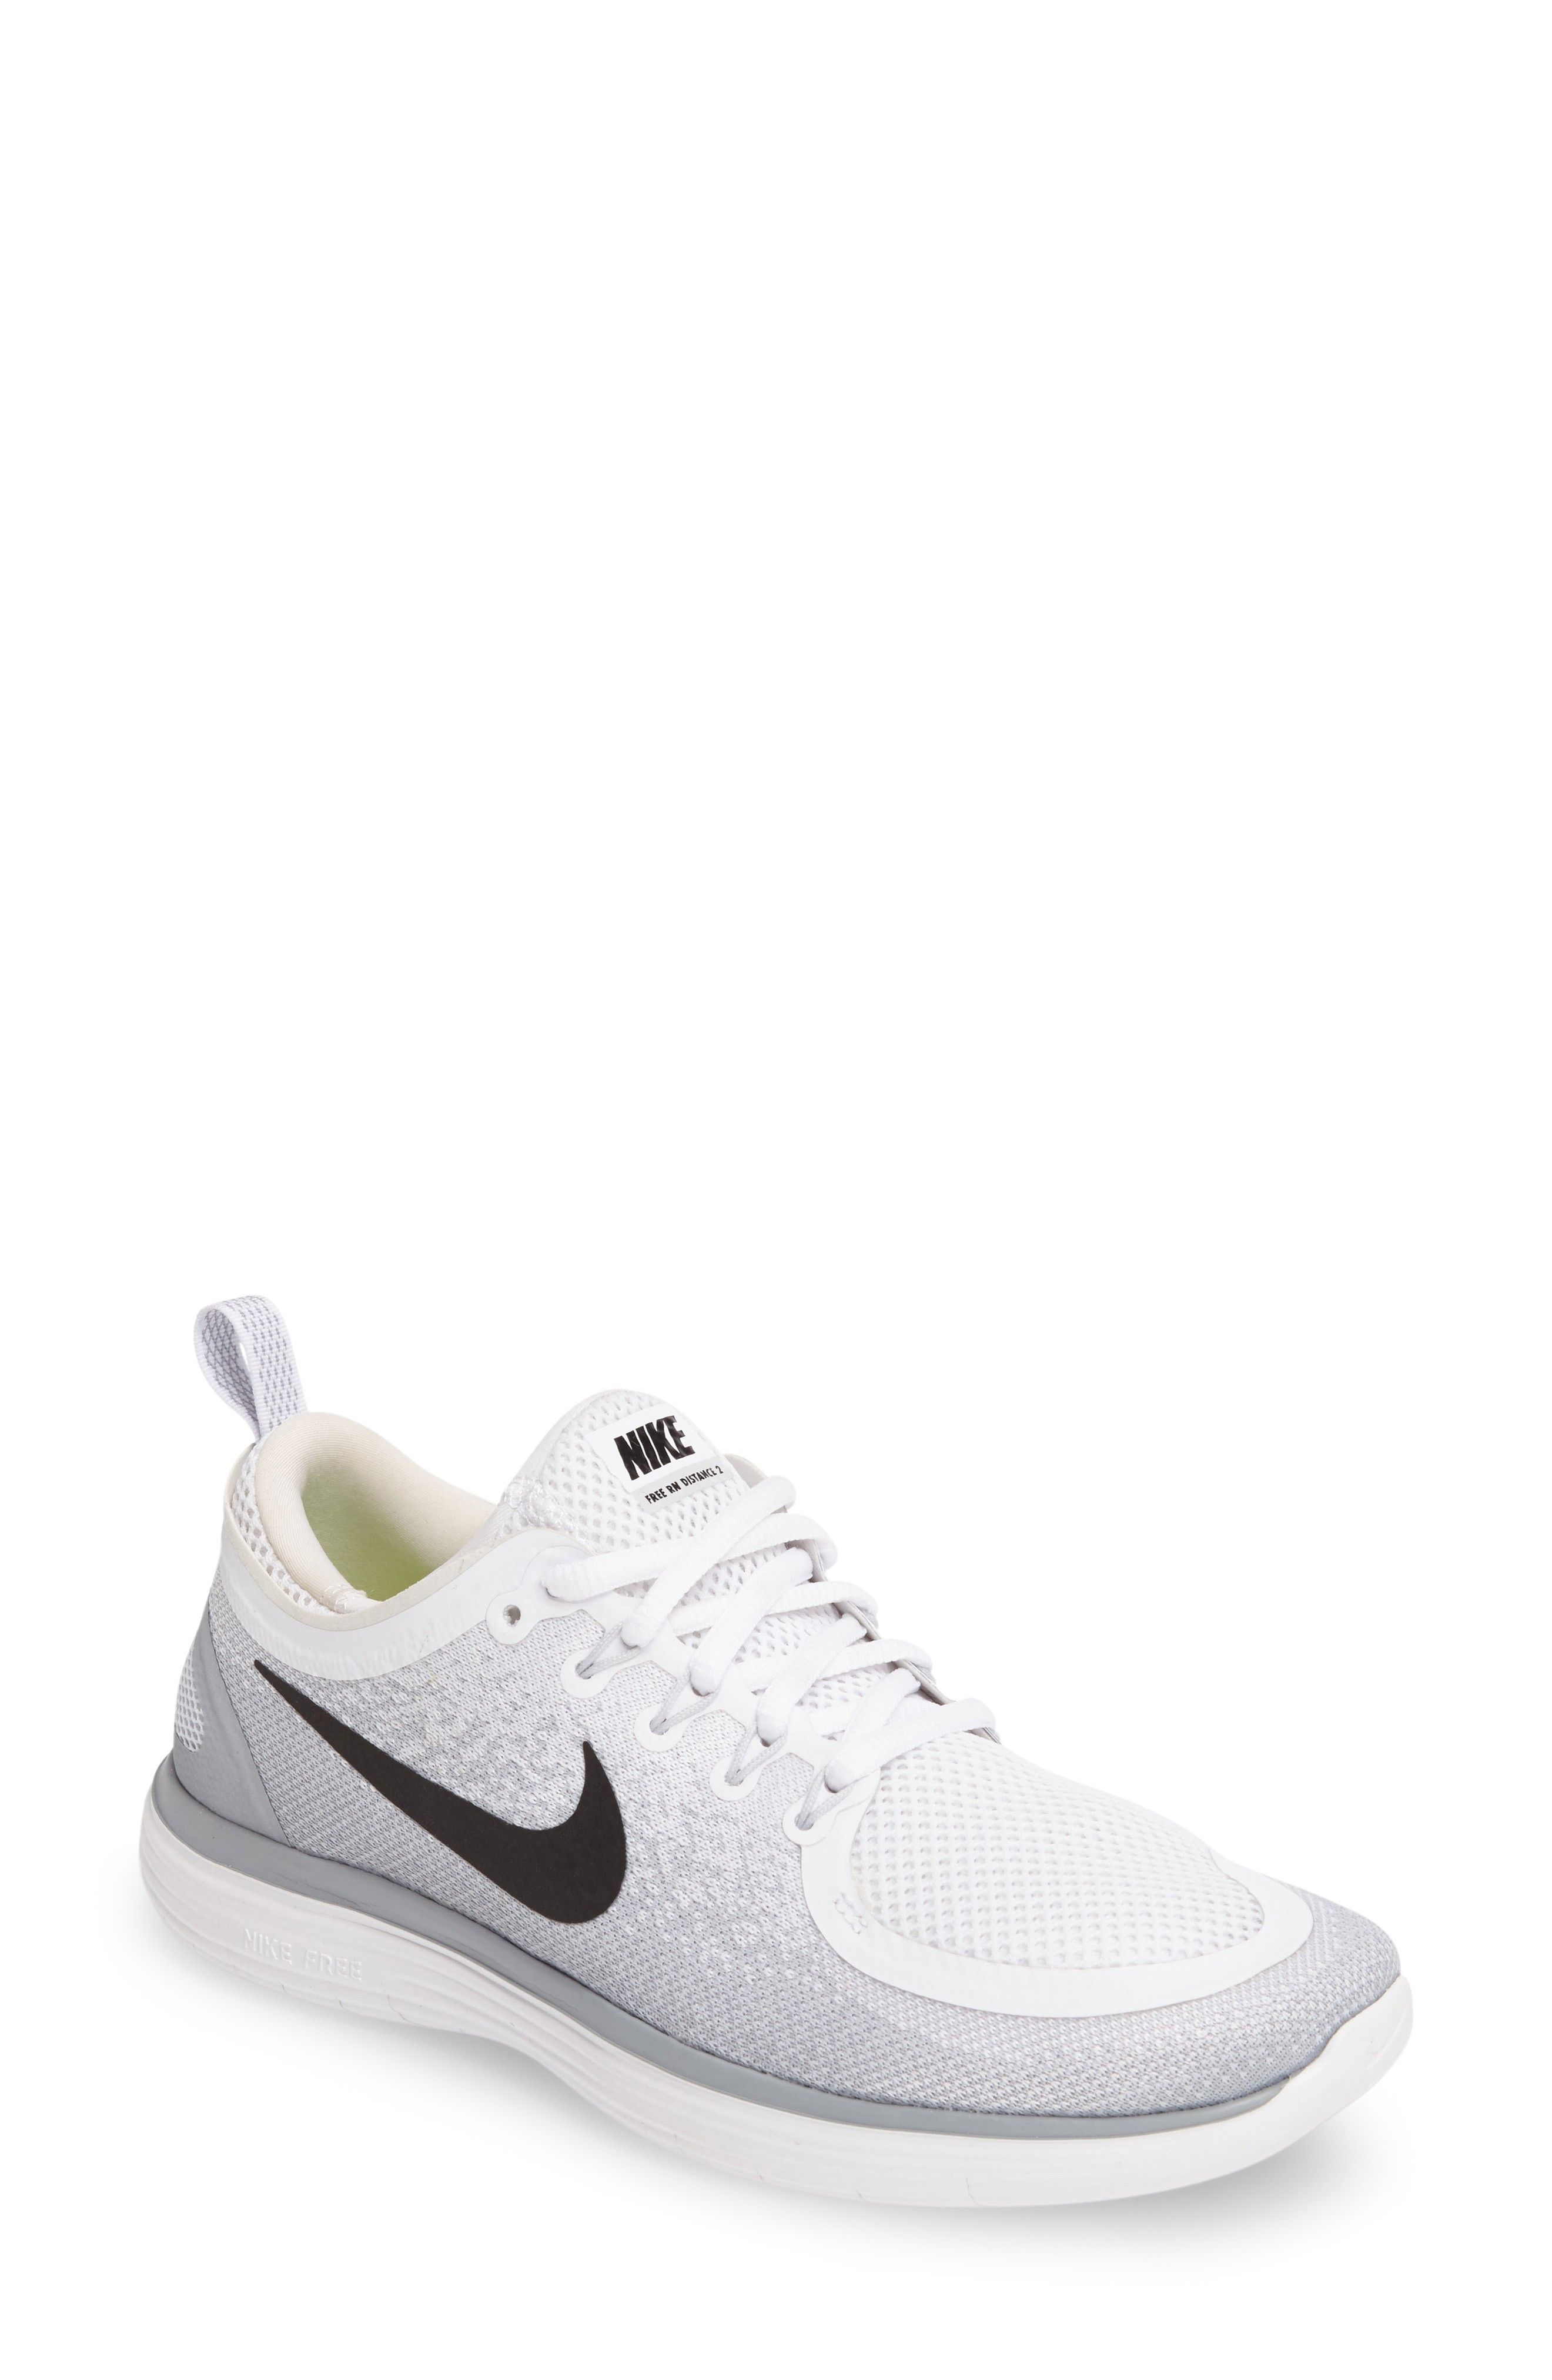 Main Image - Nike Free Run Distance 2 Running Shoe (Women)